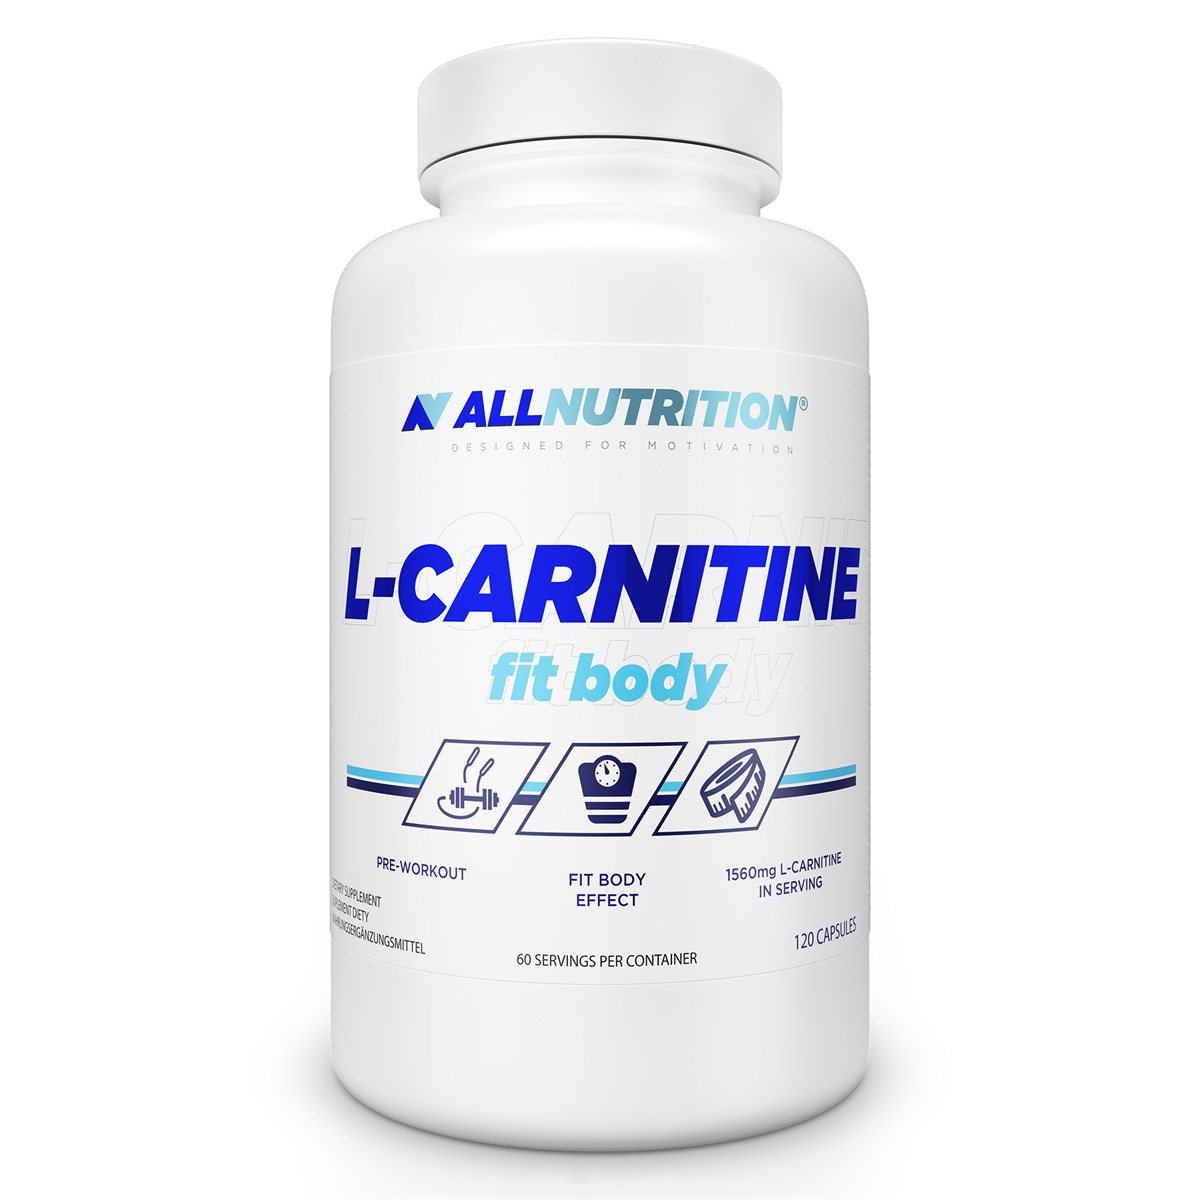 ALLNUTRITION L-CARNITINE FIT BODY